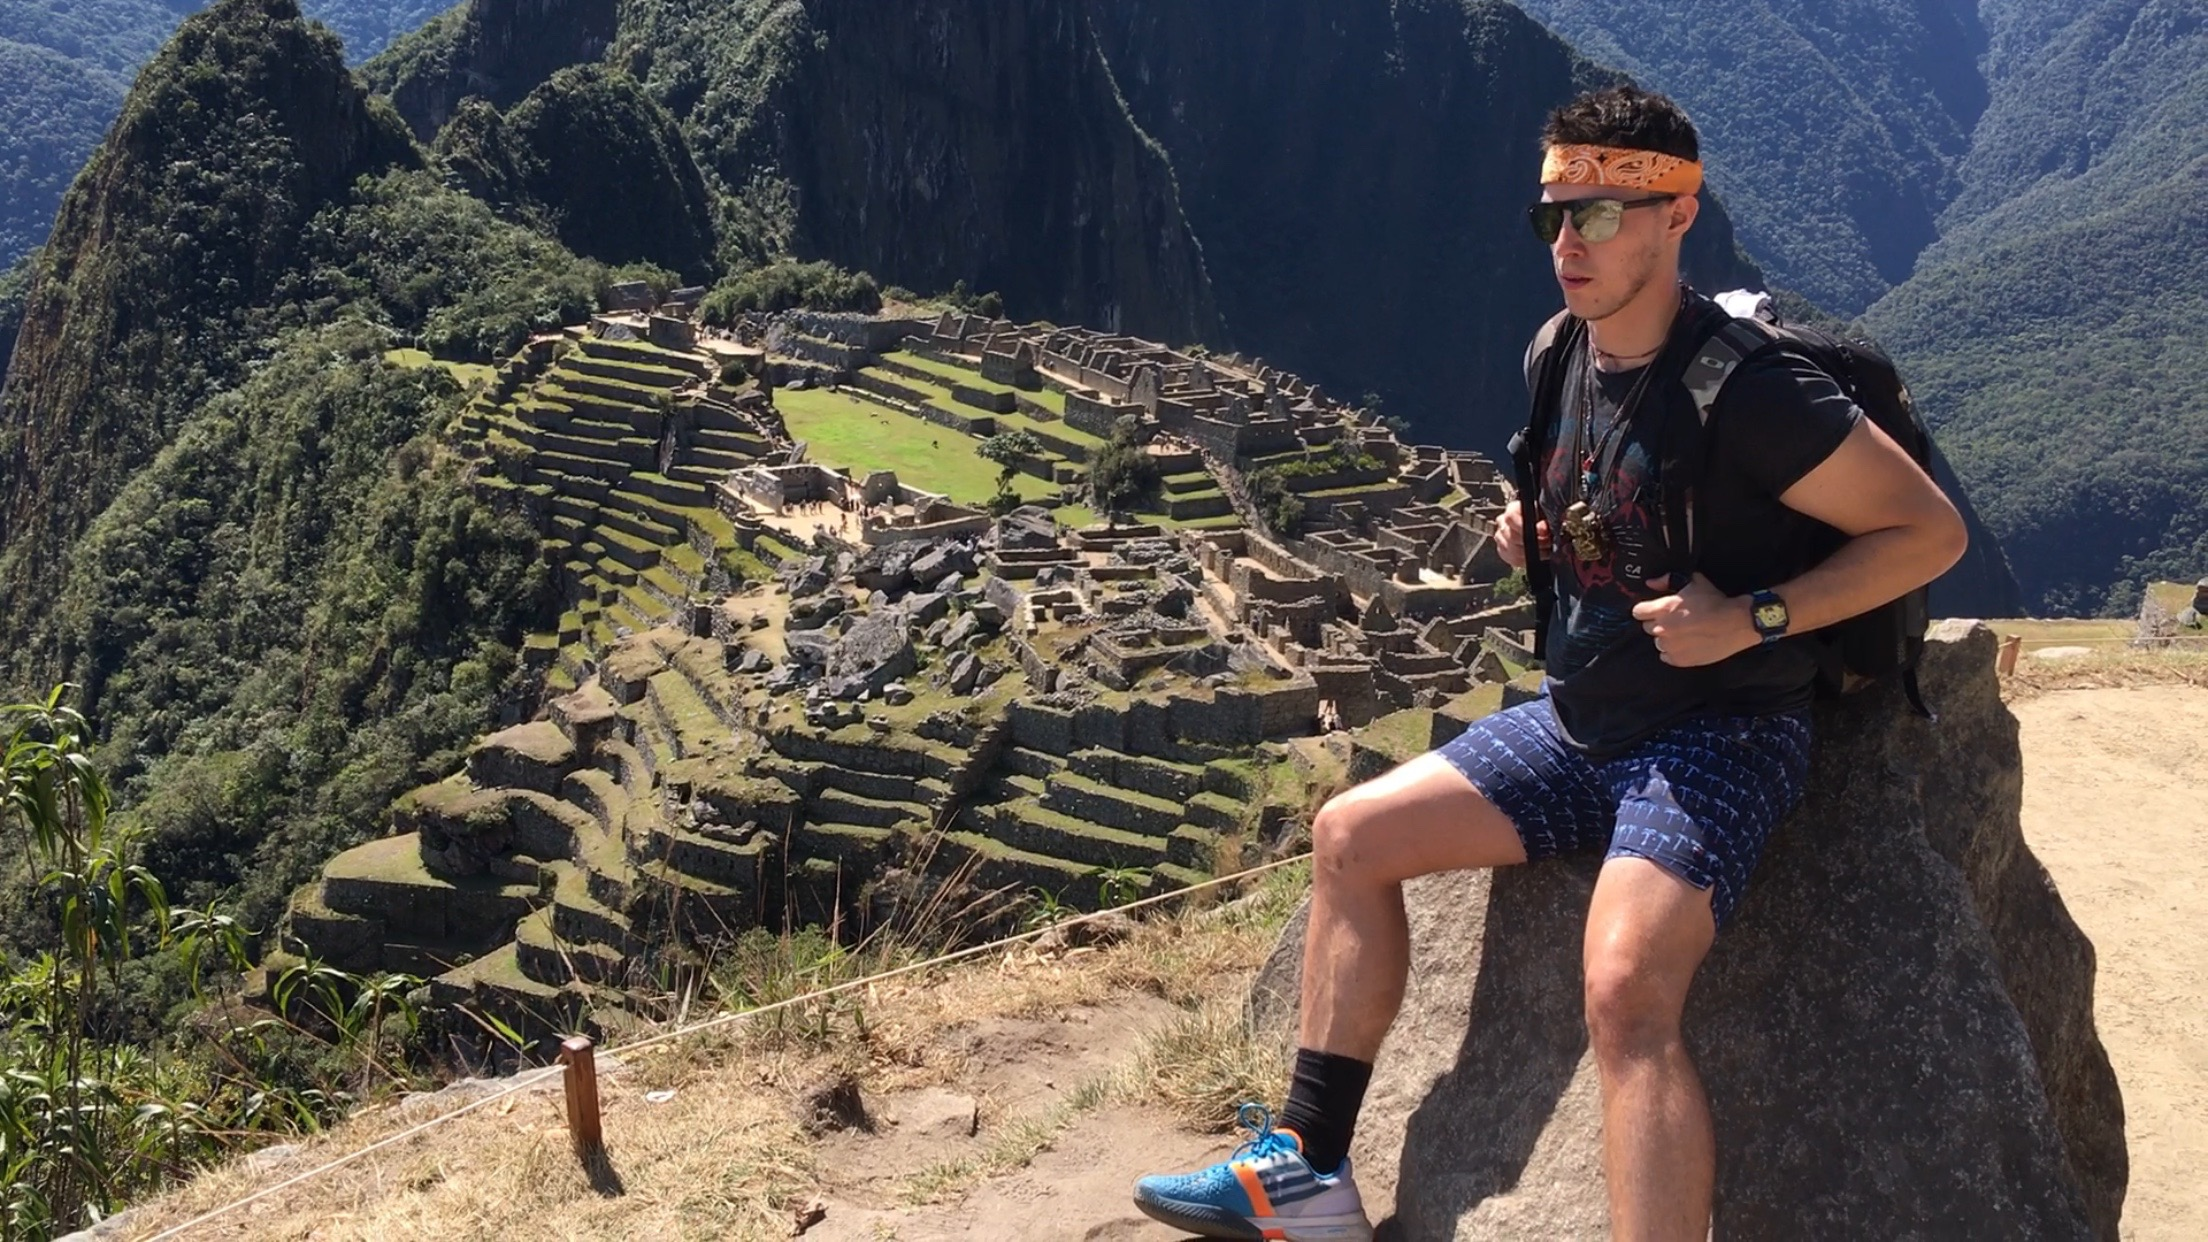 Machu Picchu has always been one of the most iconic places in the world and has now become the popular destination to visit and spend your vacations at in the entire South America. Machu Picchu has so many cultural and natural treasures